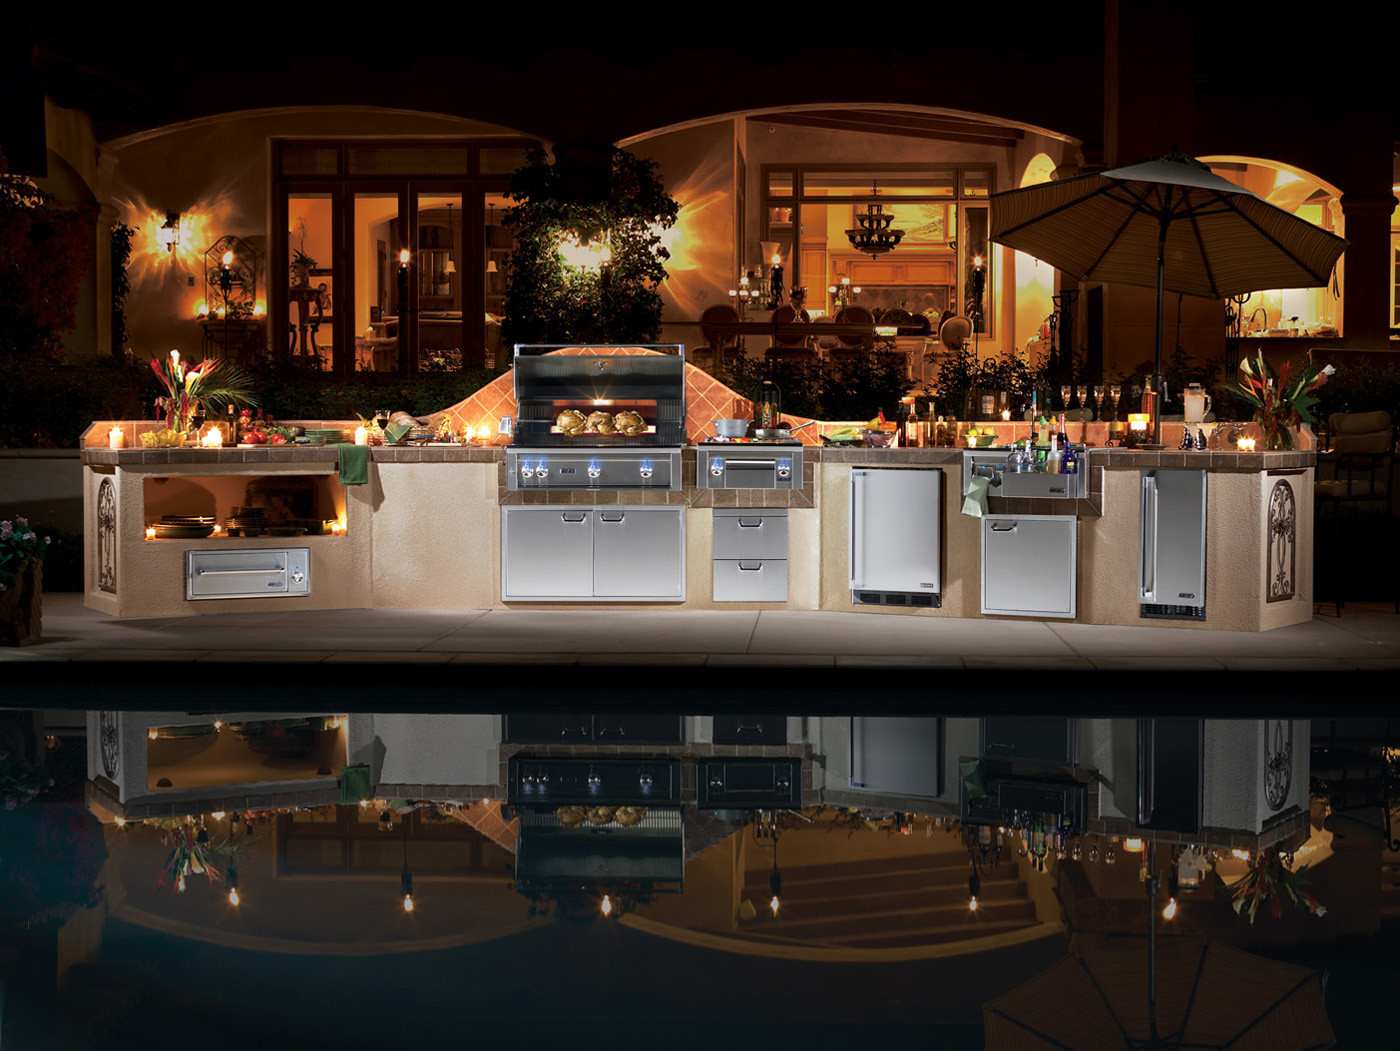 lynx luxury outdoor kitchen products outdoor kitchen design Lynx Luxury Outdoor Kitchen Products